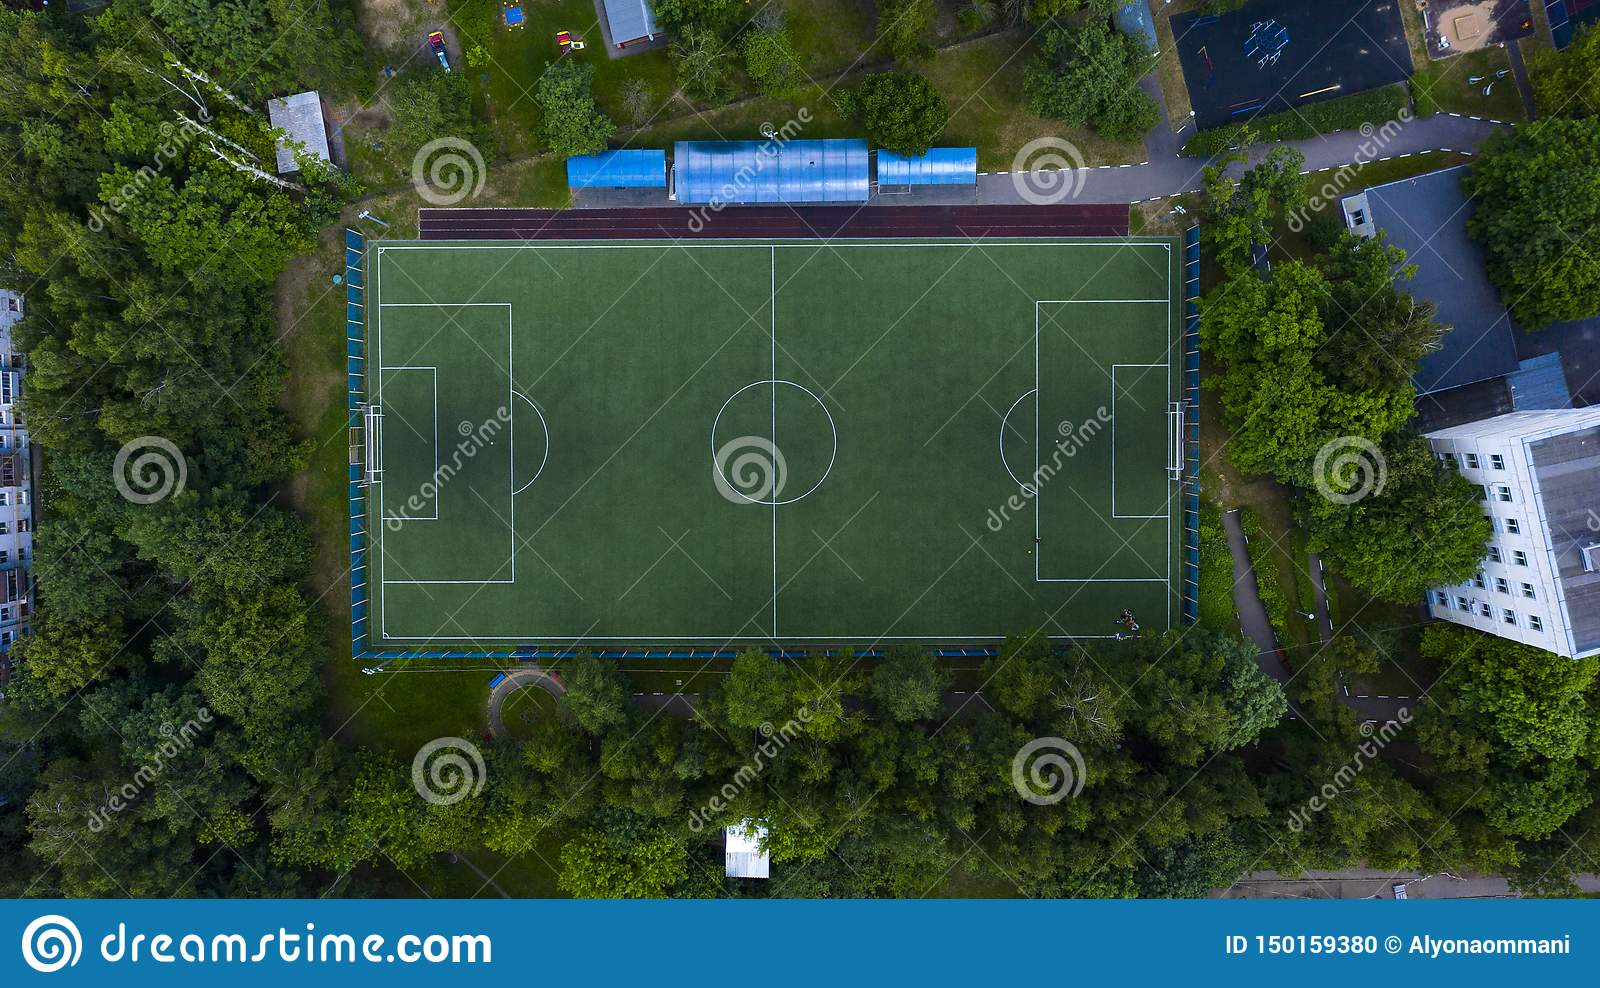 Aerial urban view of the football field with players